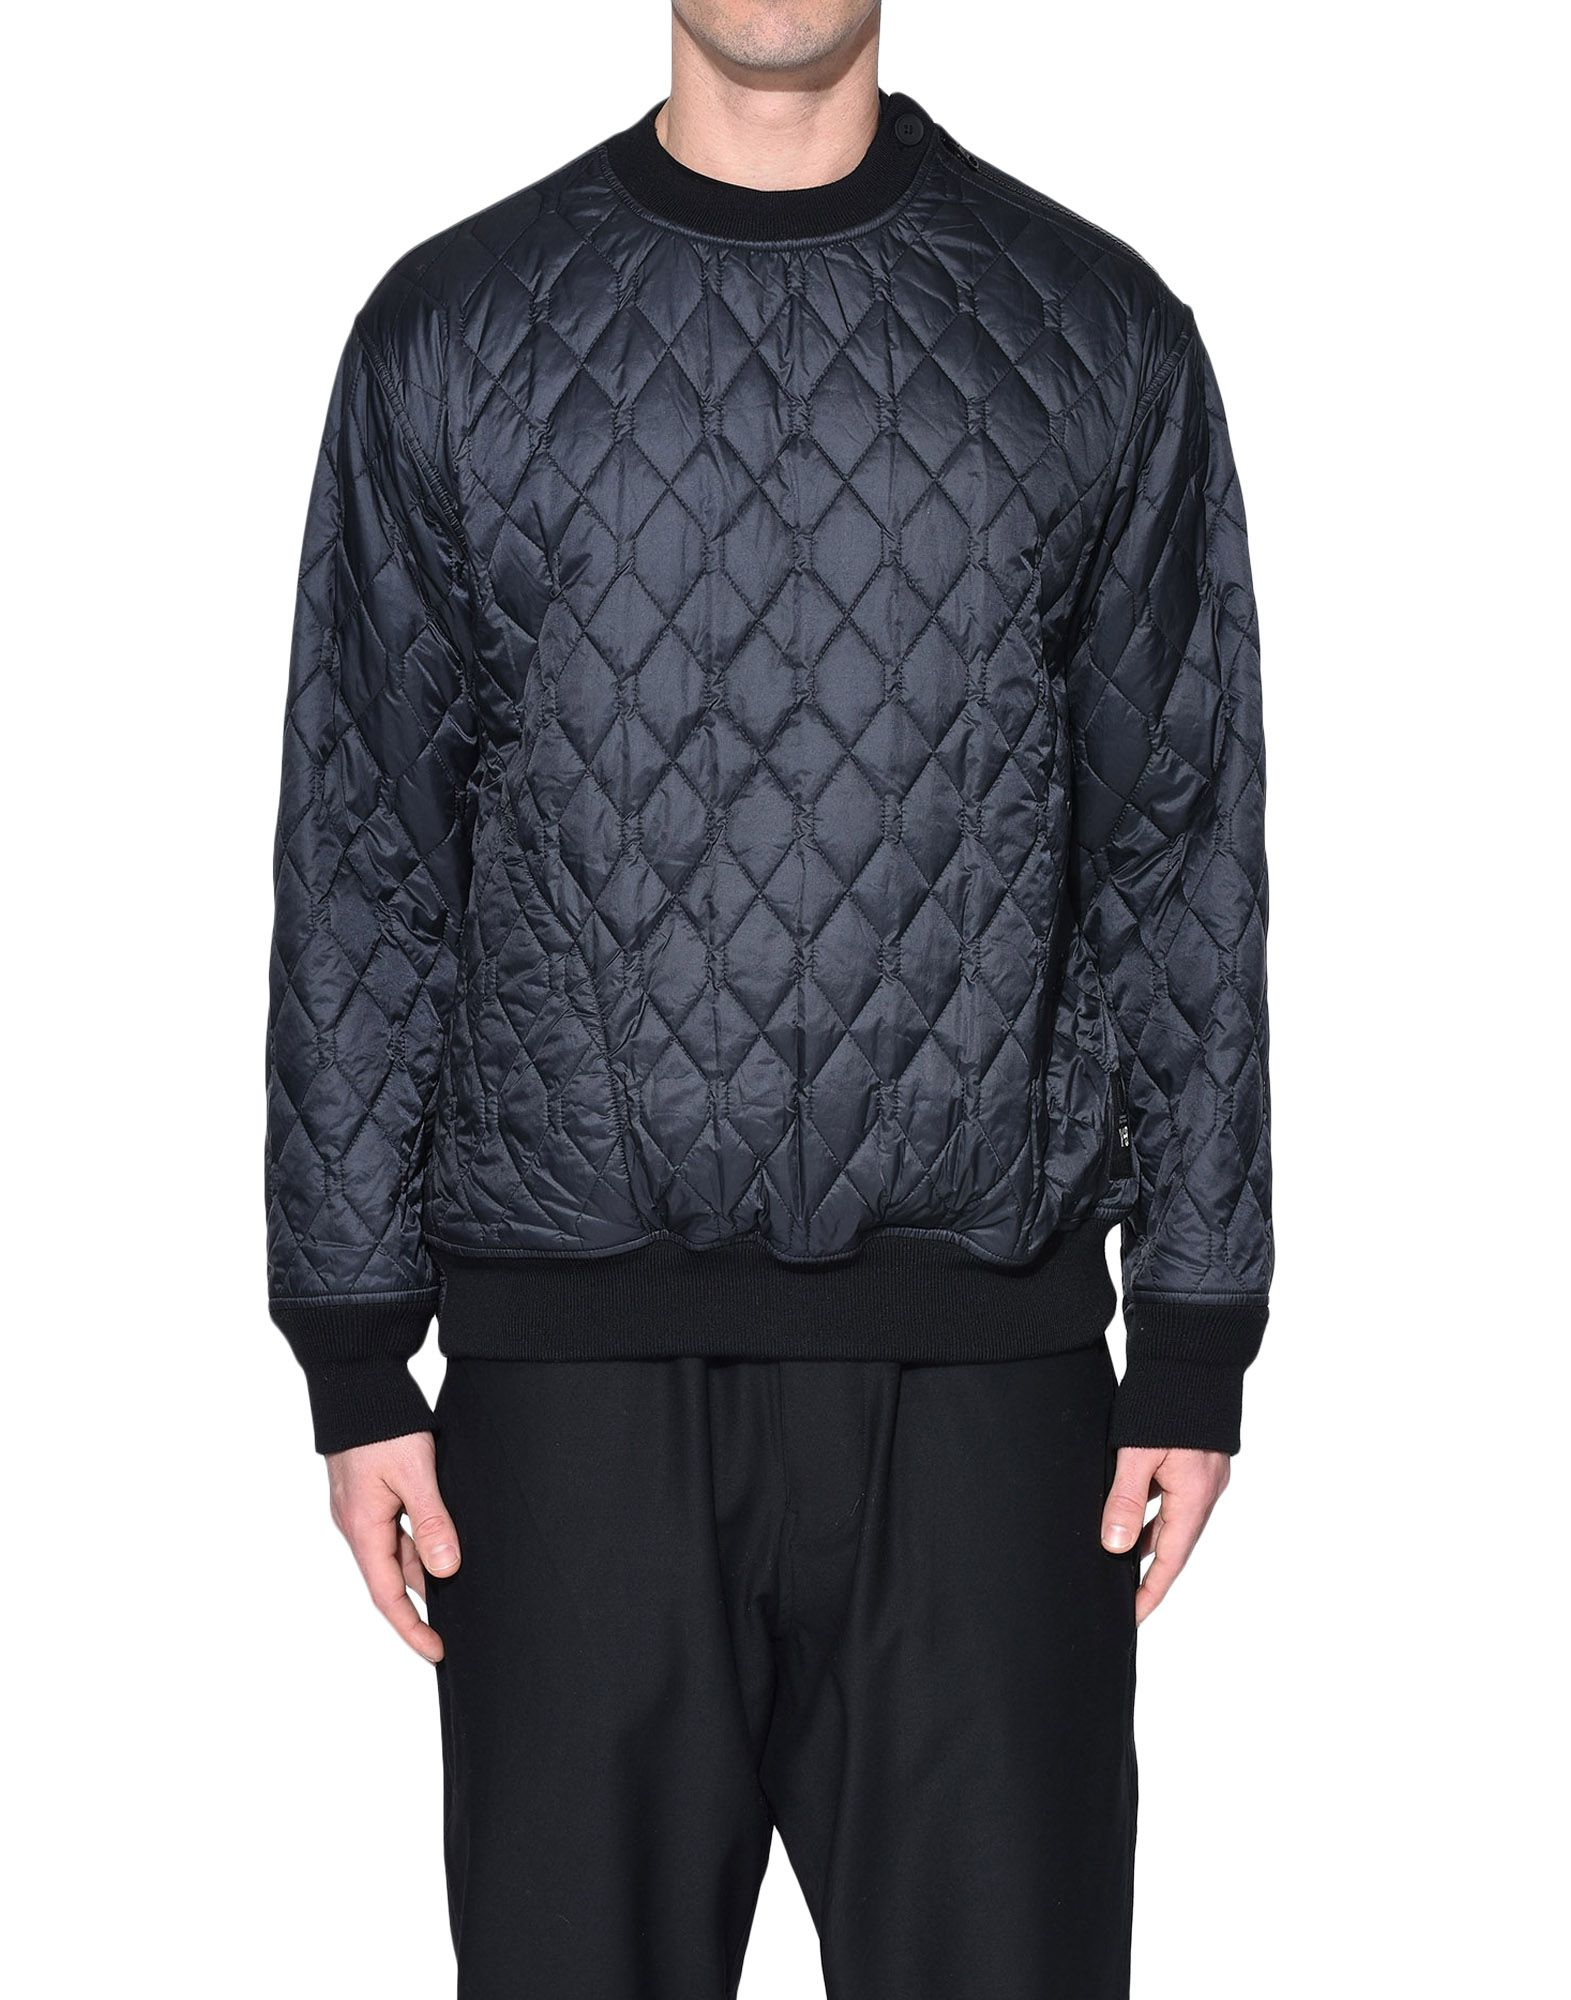 Y-3 Y-3 Quilted Sweater Sweatshirt Man r